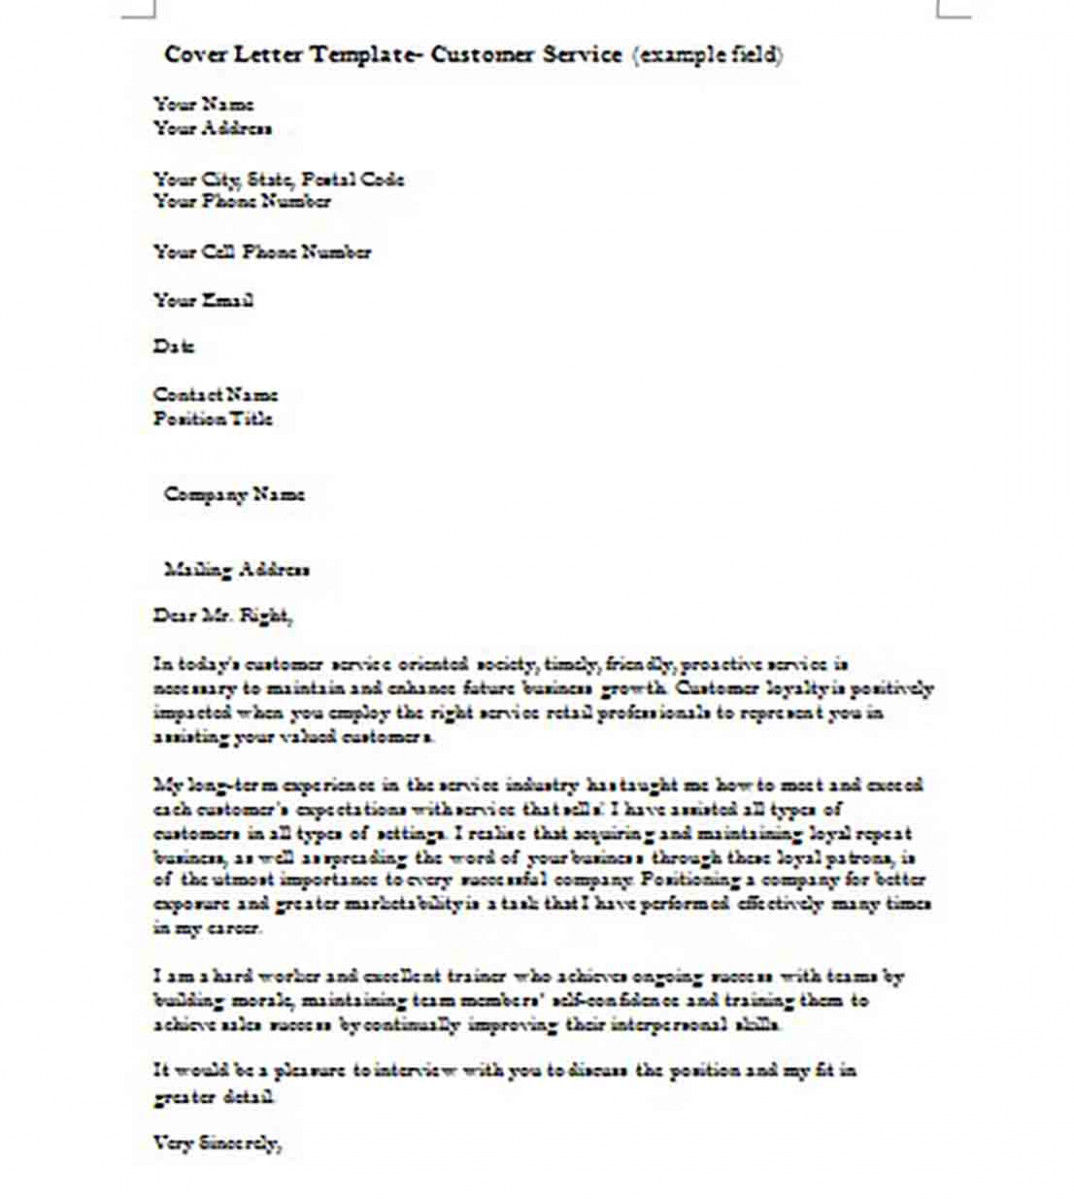 Customer Service Cover Letter templates